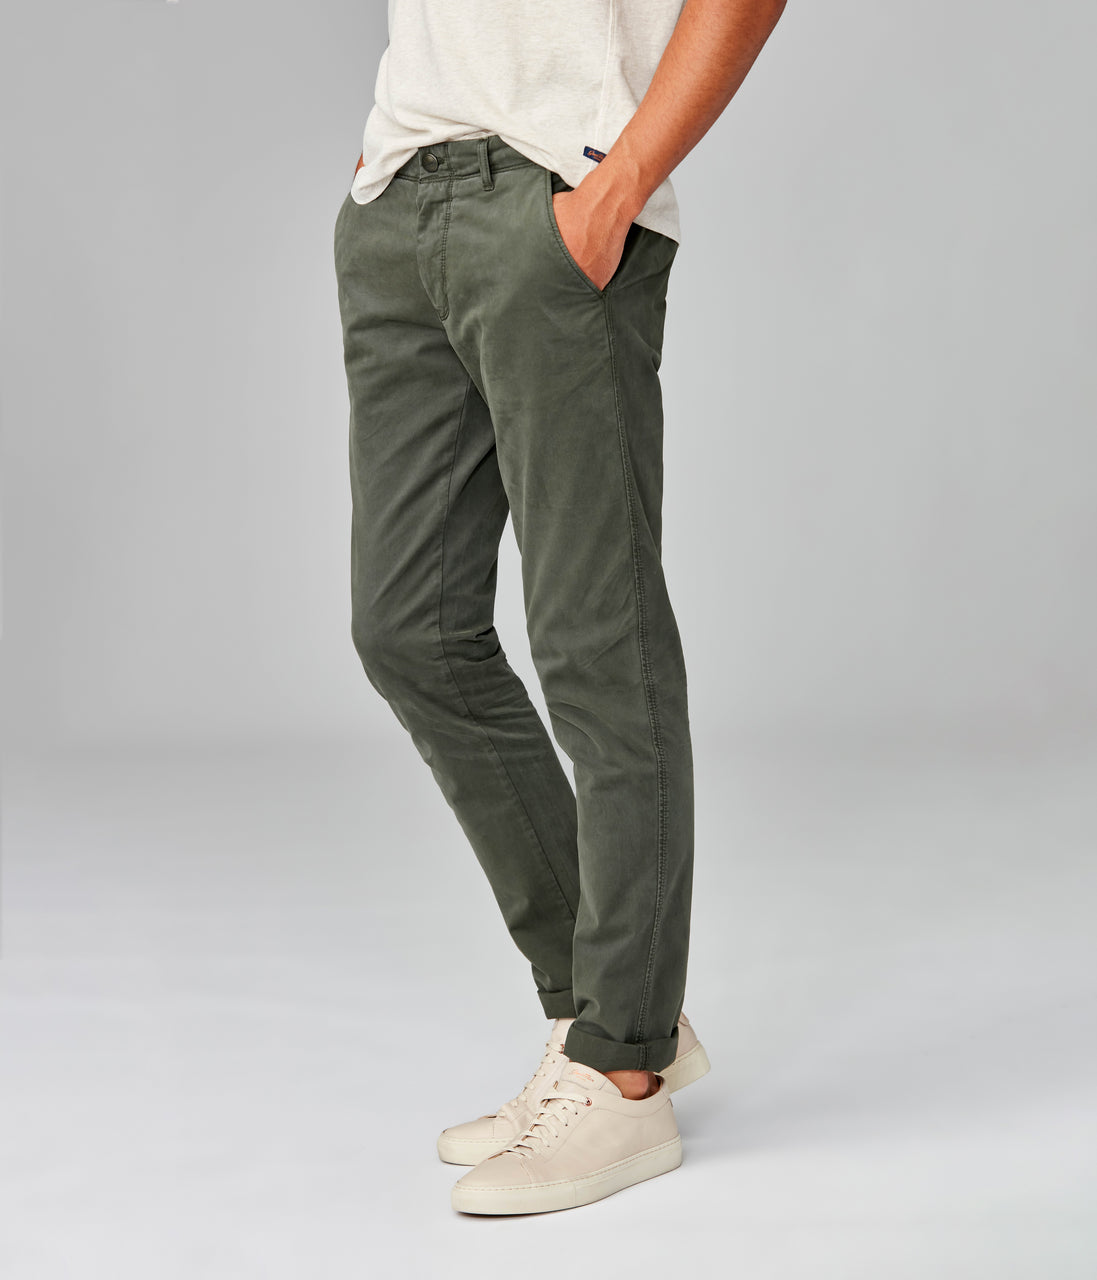 Pro Stretch Twill Star Chino - Military Green - Good Man Brand - Pro Stretch Twill Star Chino - Military Green